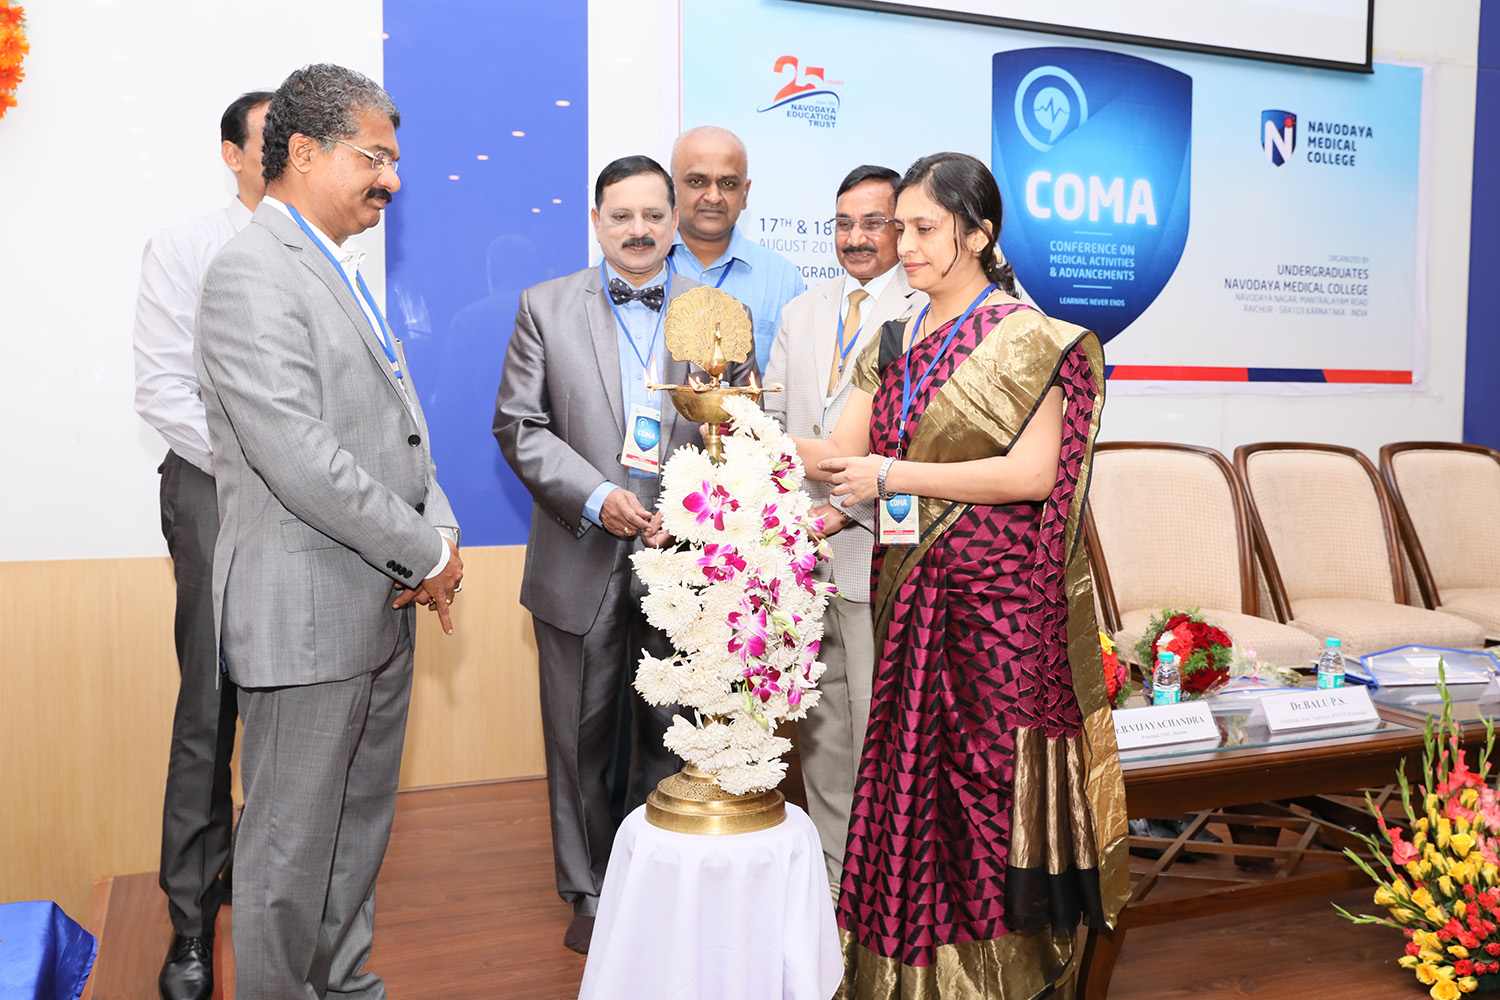 Conference on Medical Activities and Advancements (COMA 2K18)